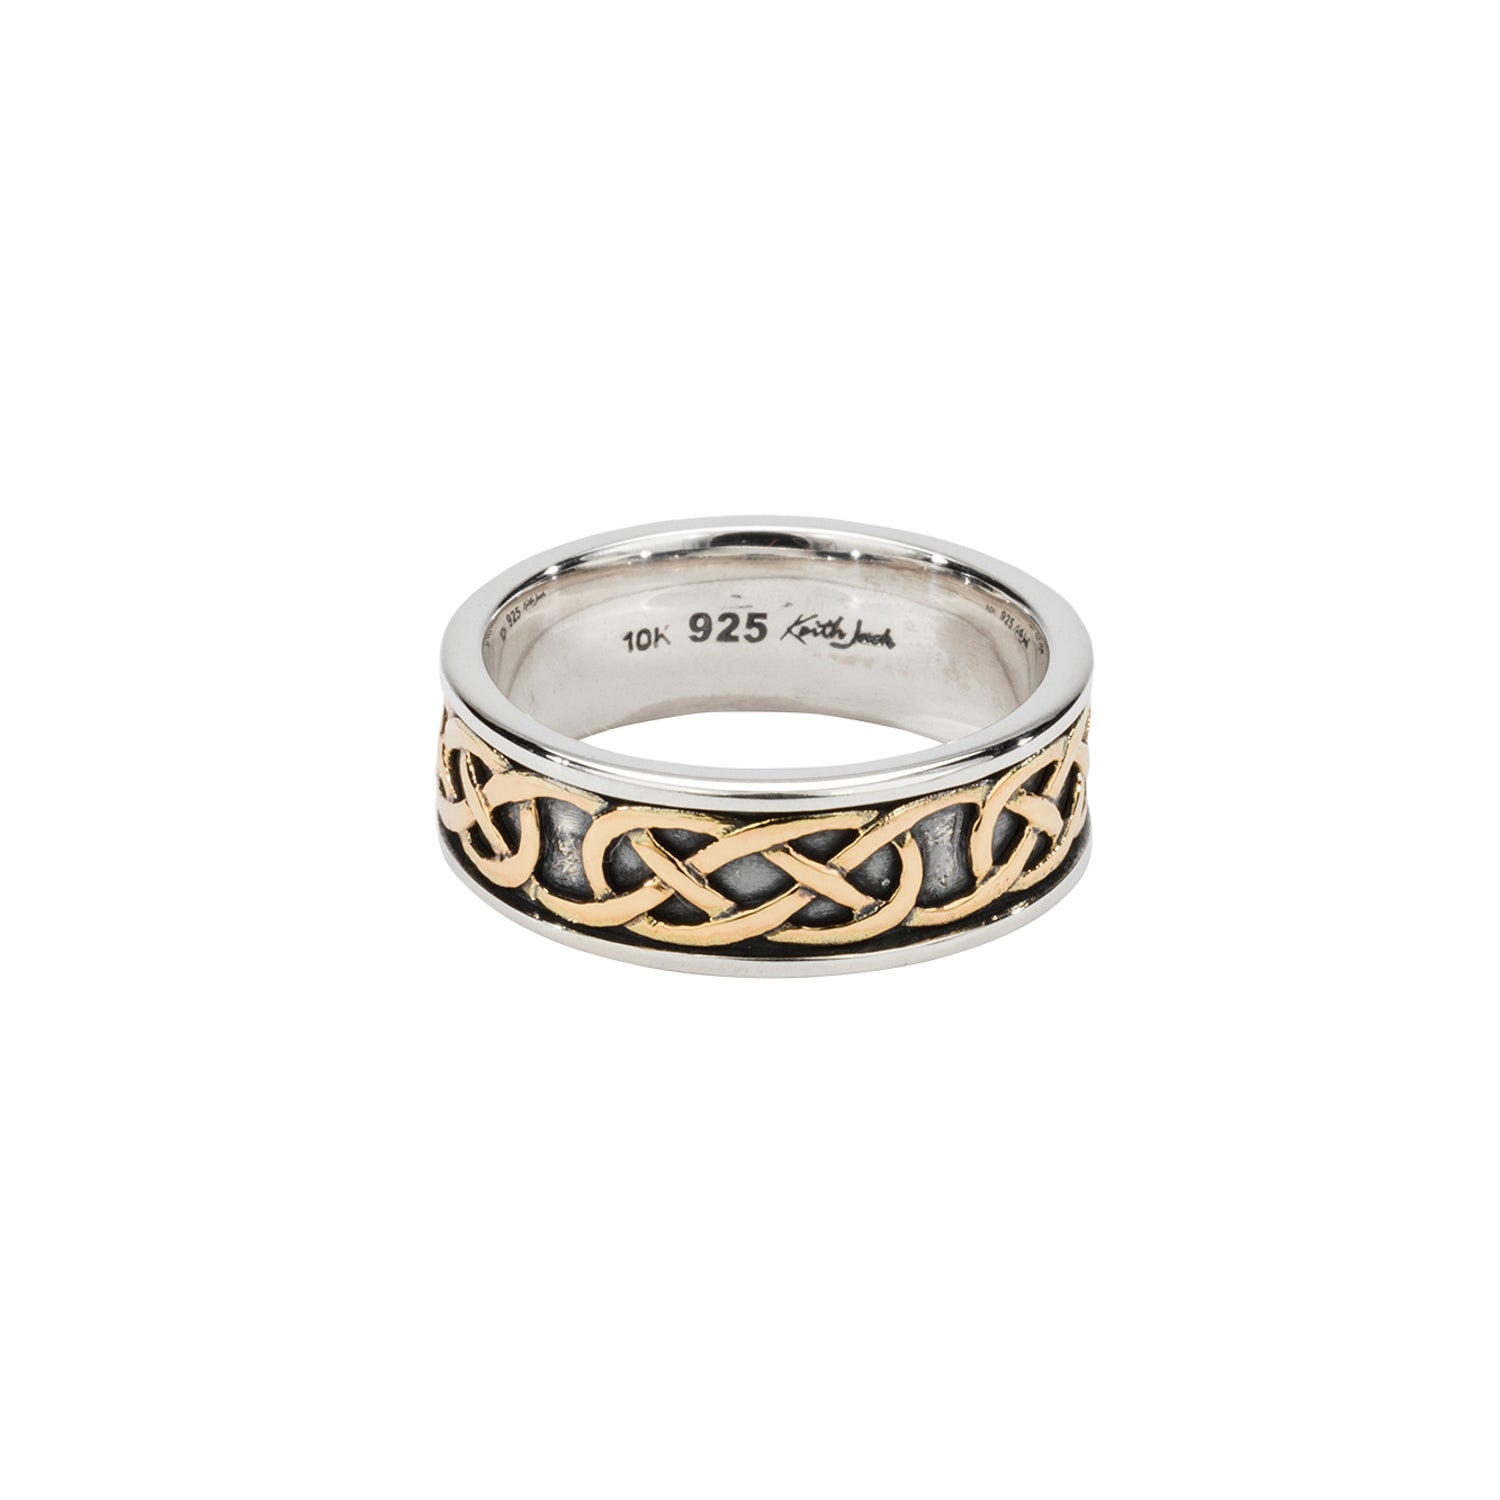 "Ring Bands Oxidization 10k Love Knot ""Belston"" Ring from welch and company jewelers near syracuse ny"